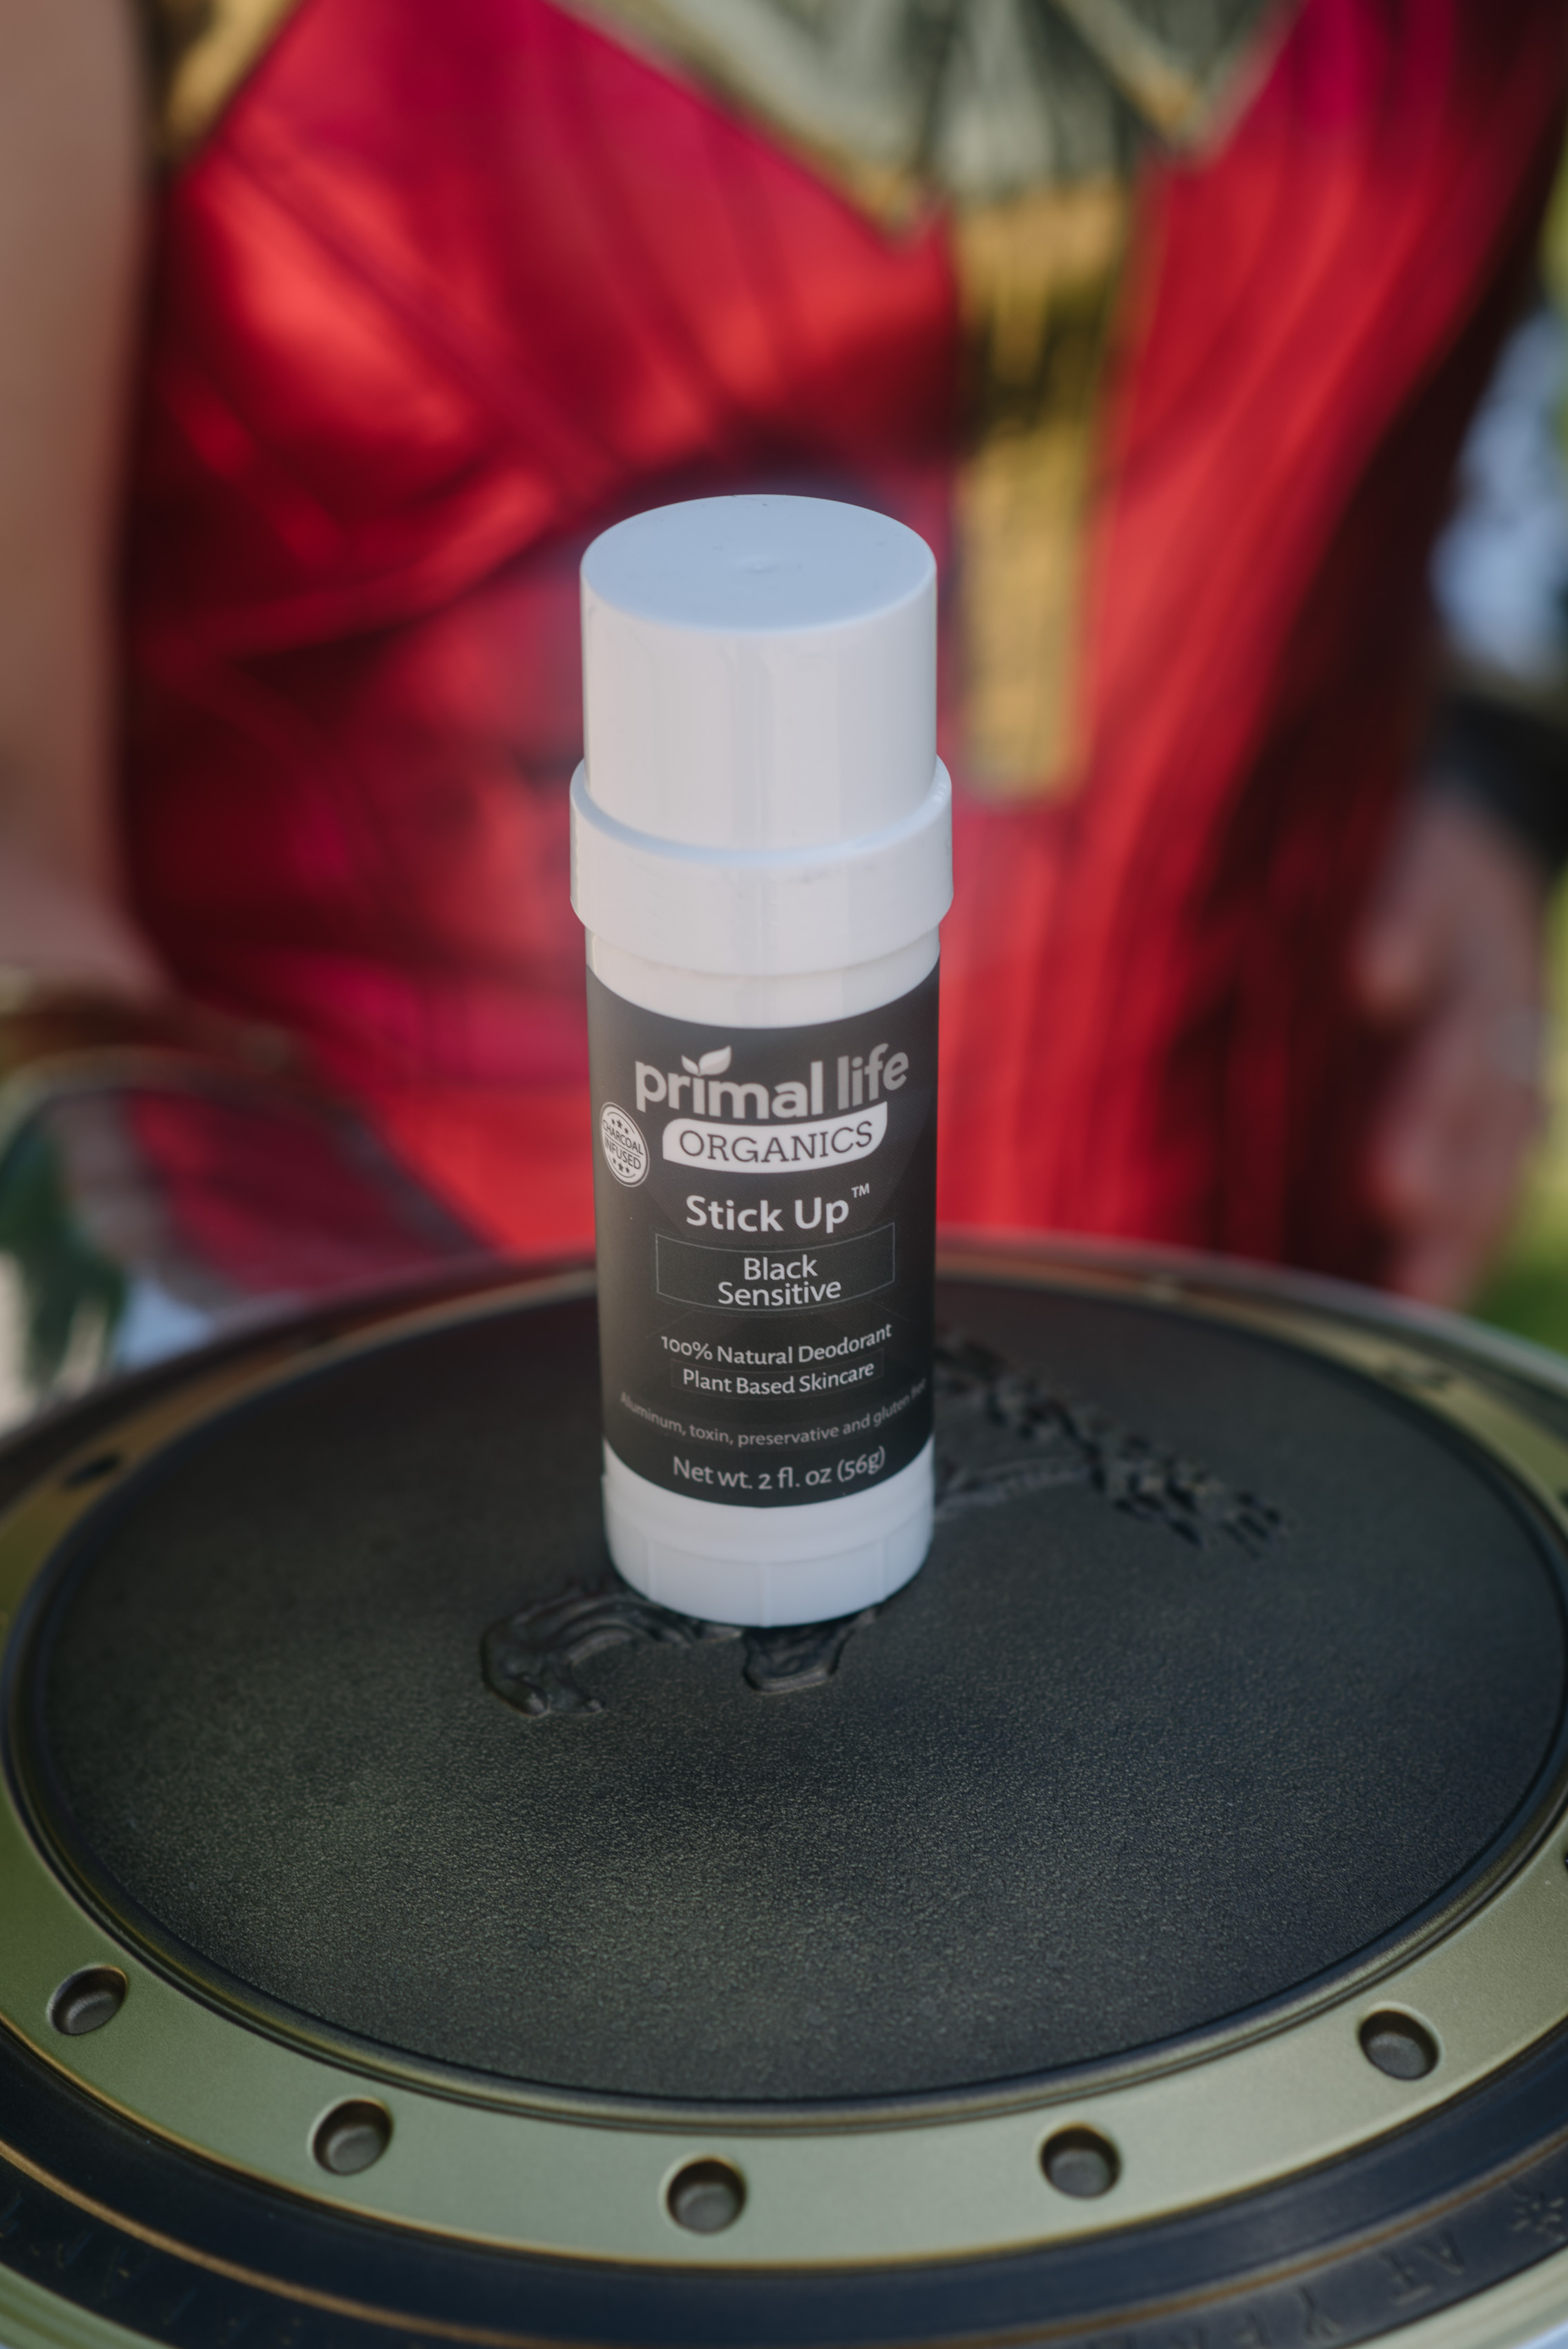 Stick Up Natural Deodorant from Primal Life Organics with Trina as Wonder Woman